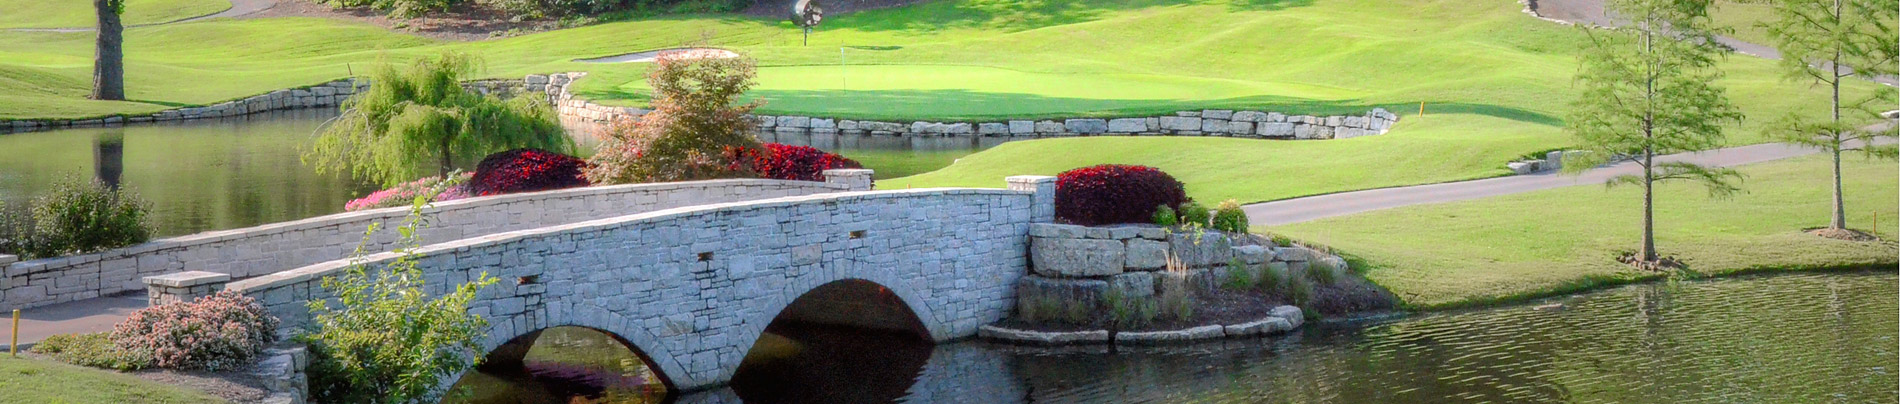 Bridge on the golf course.